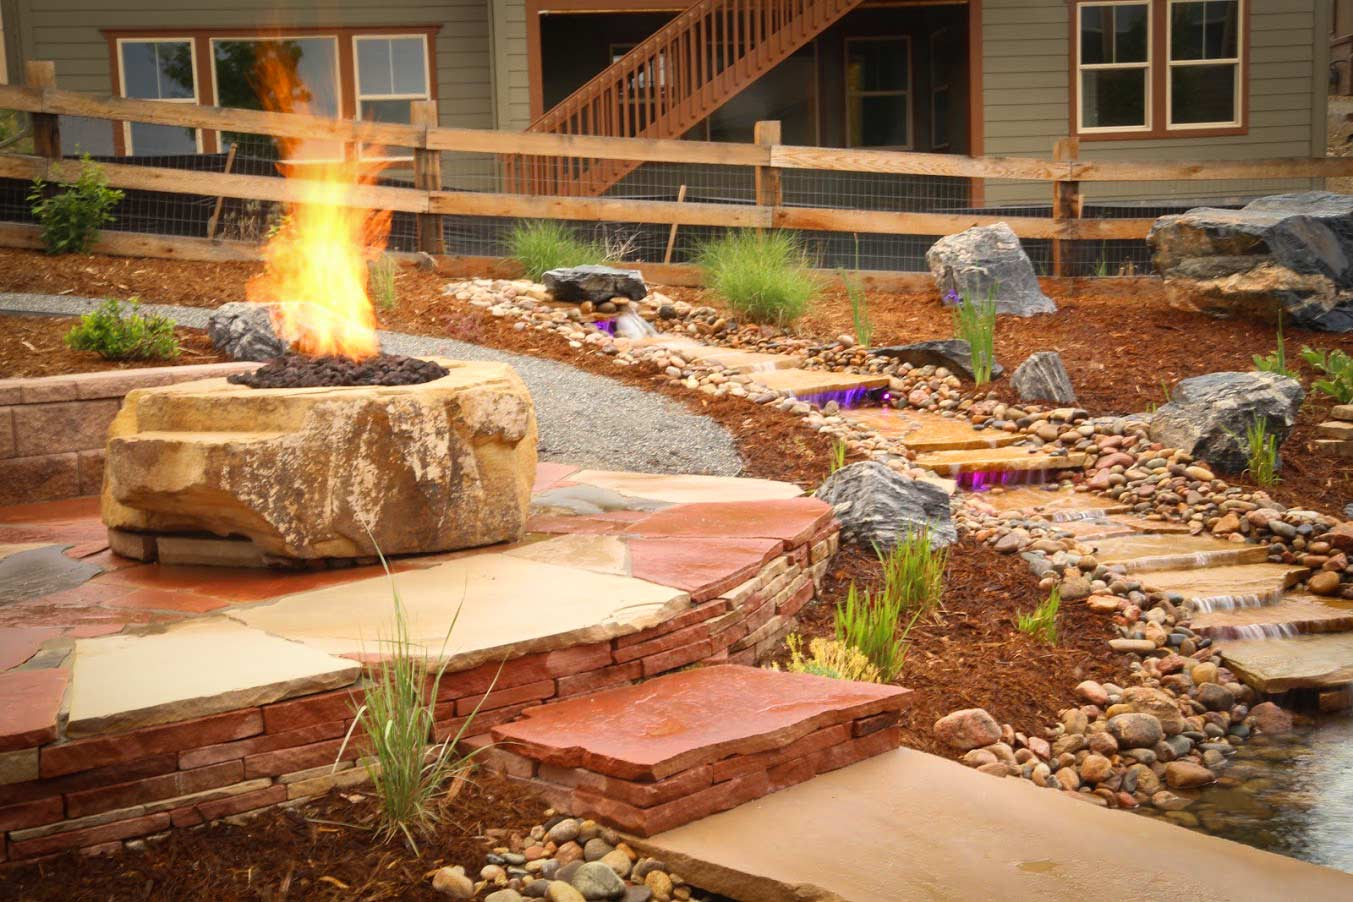 Boulder landscaping resources glacier view landscape and for Local landscape designers